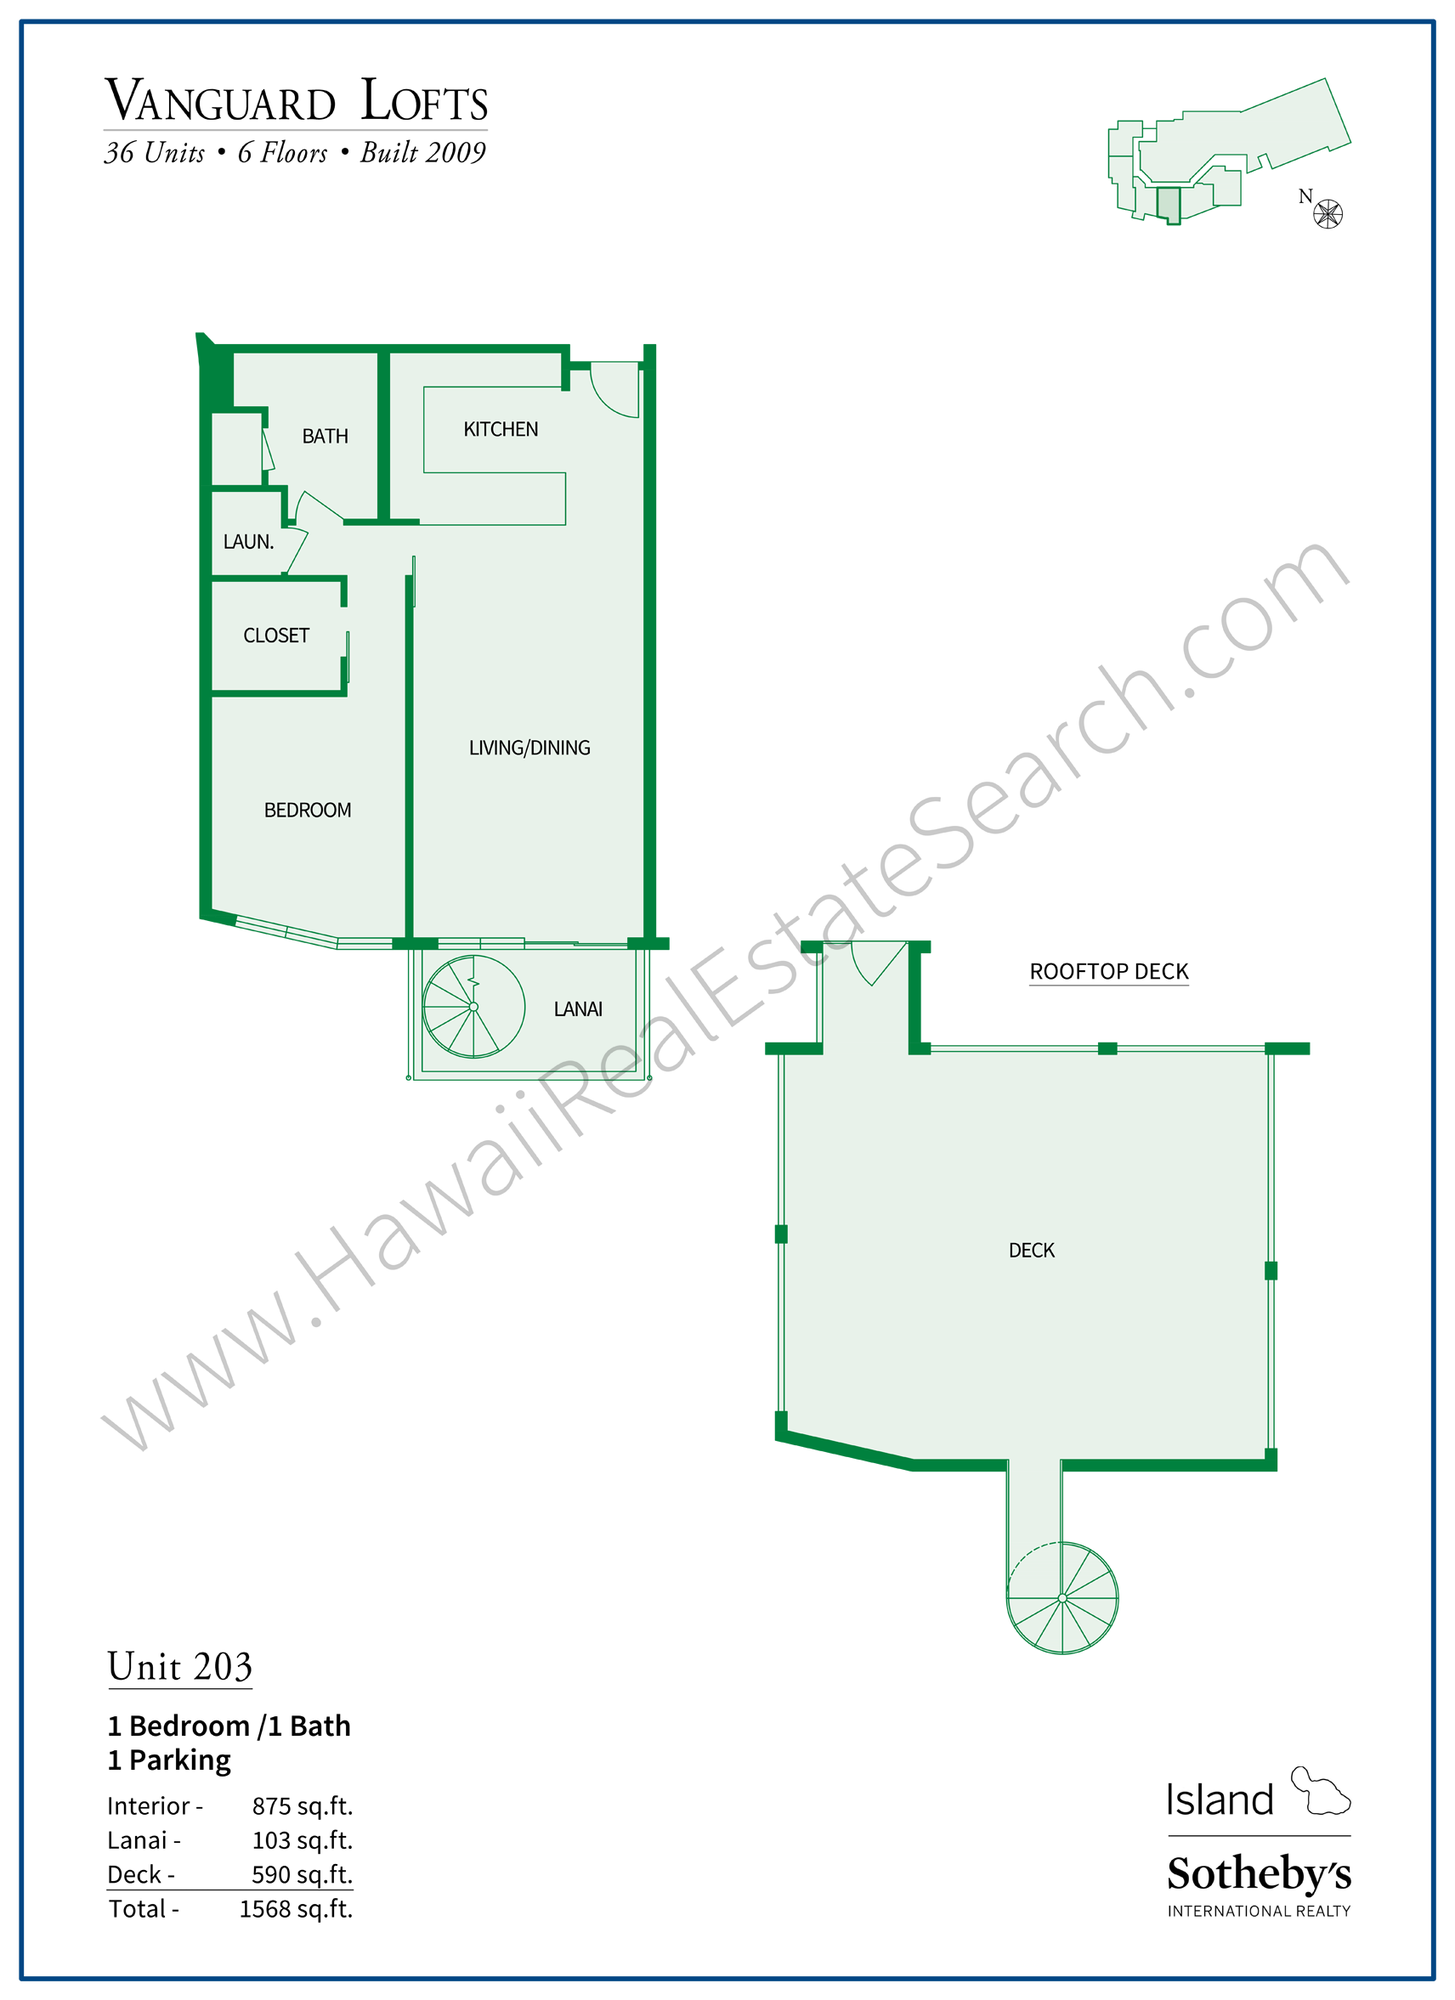 vanguard lofts floor plan 203